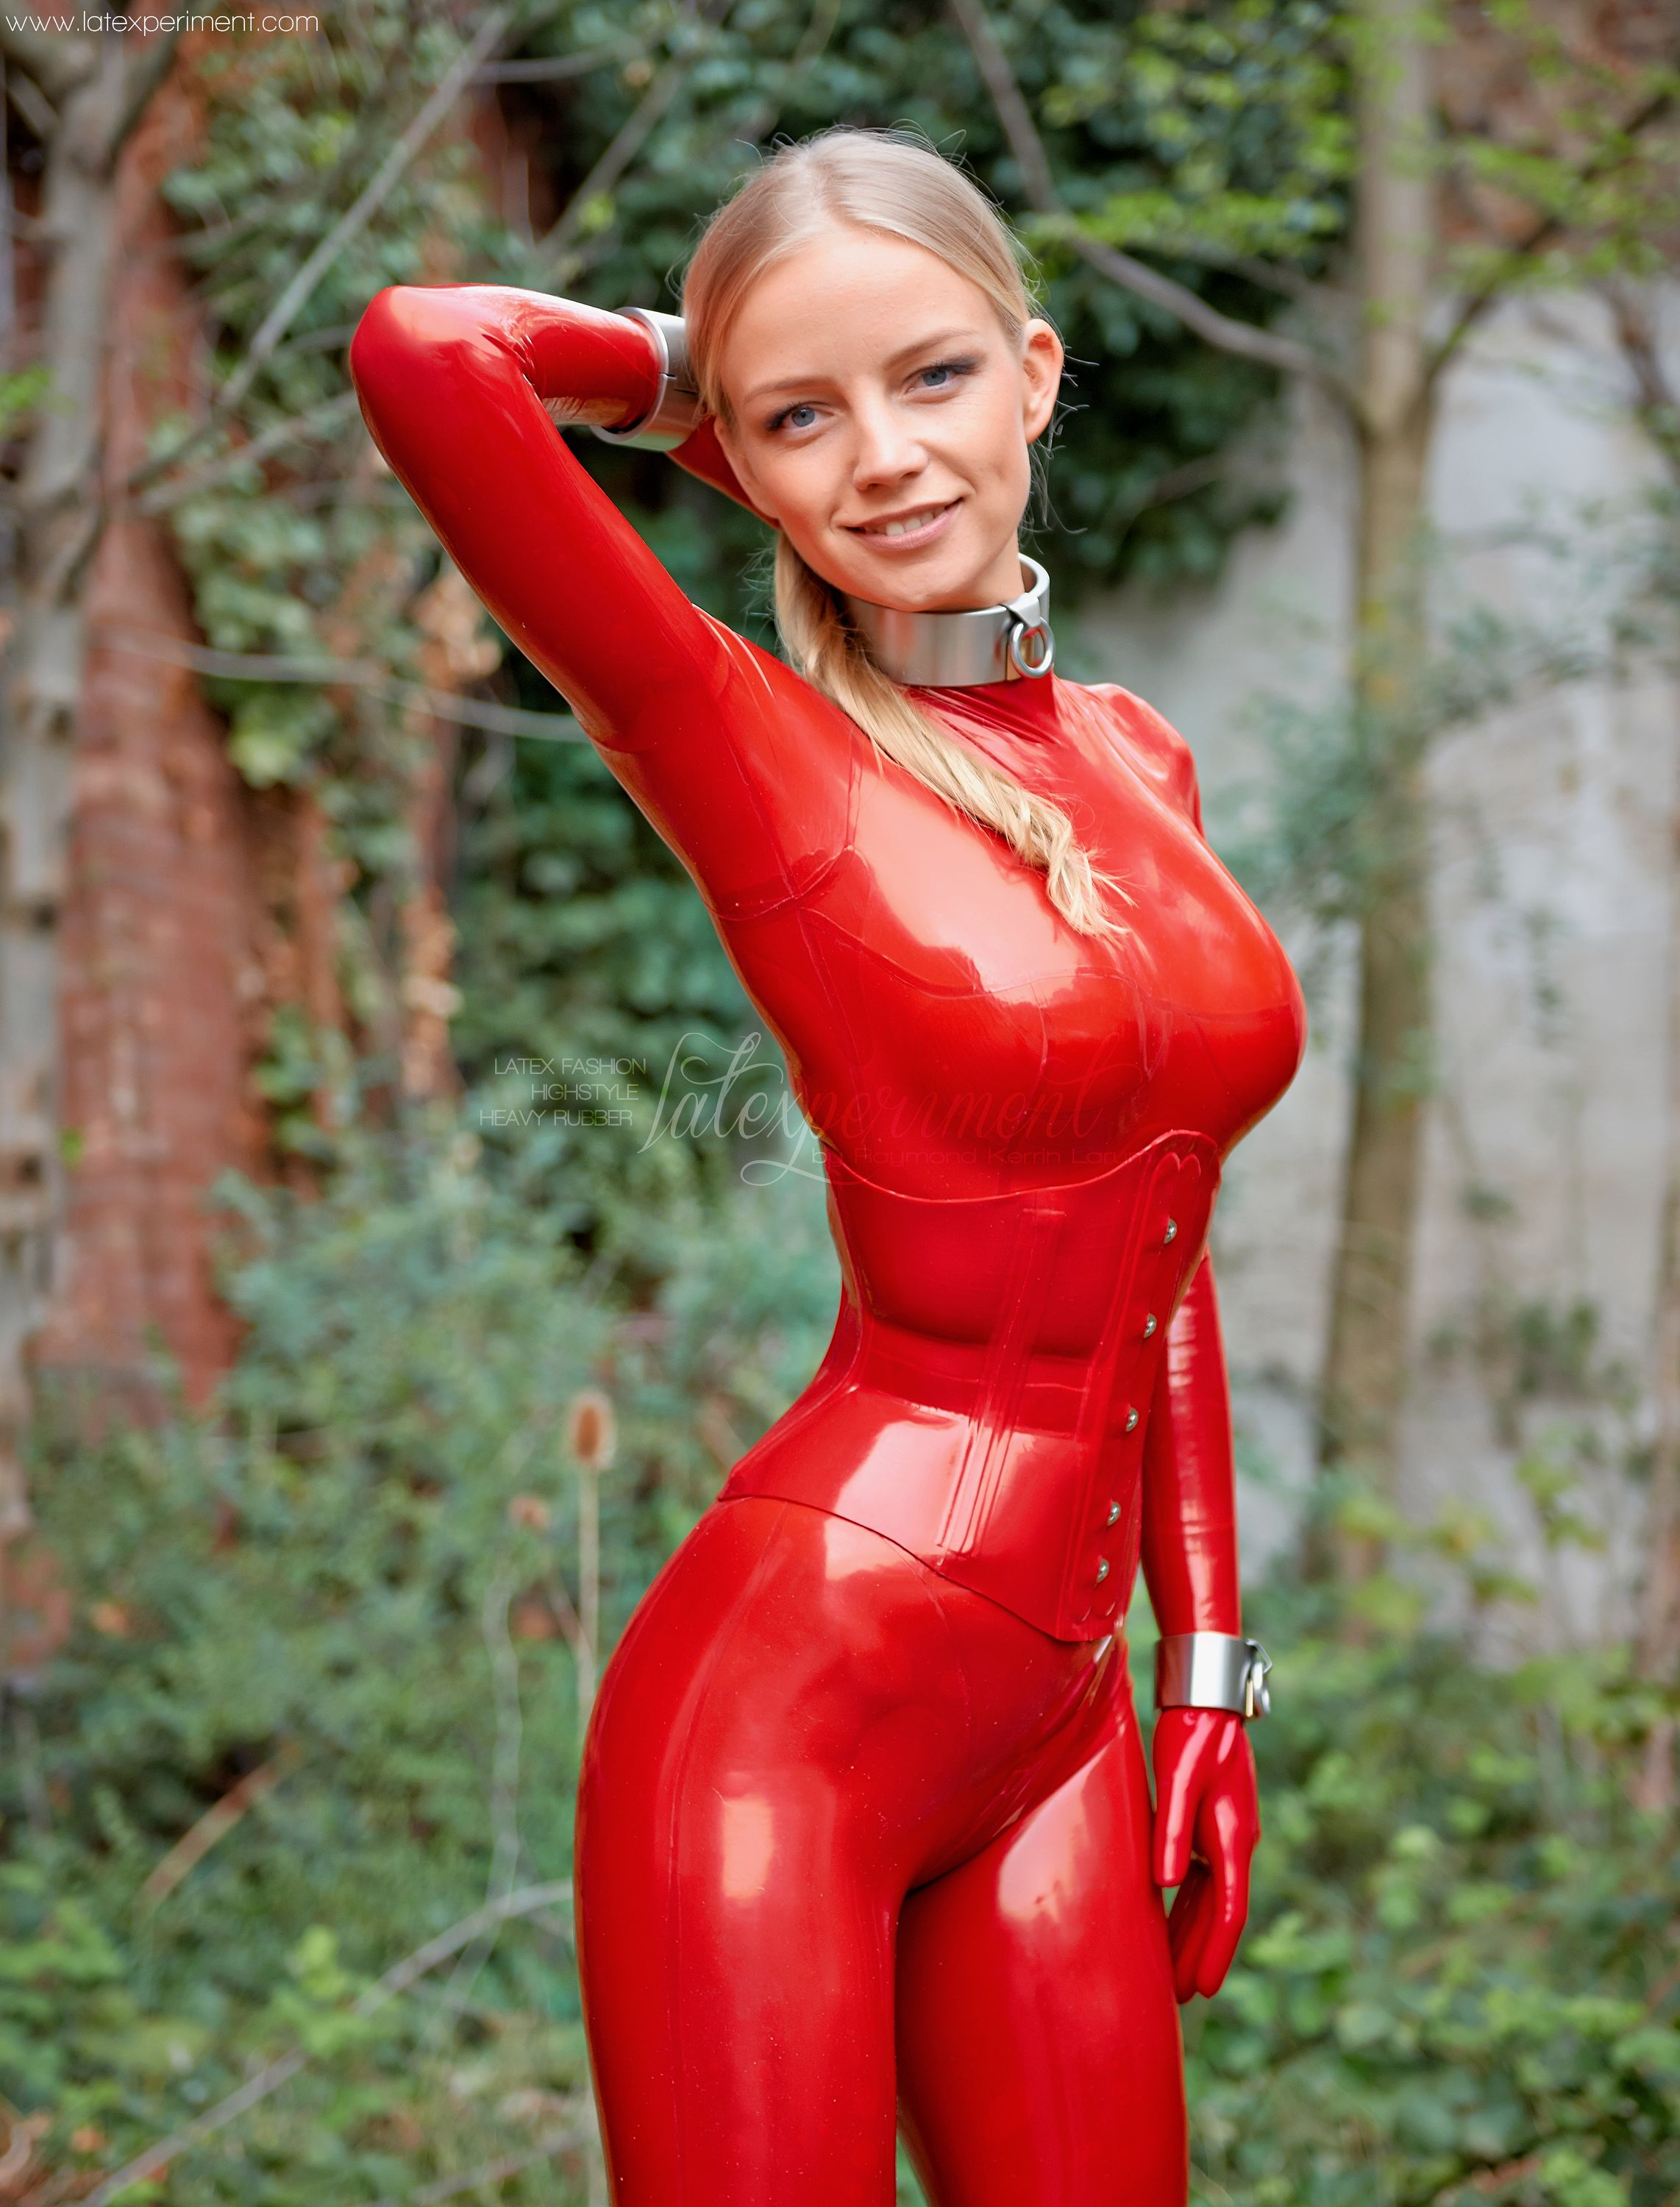 Grattis Sex Filmer Latexfetish